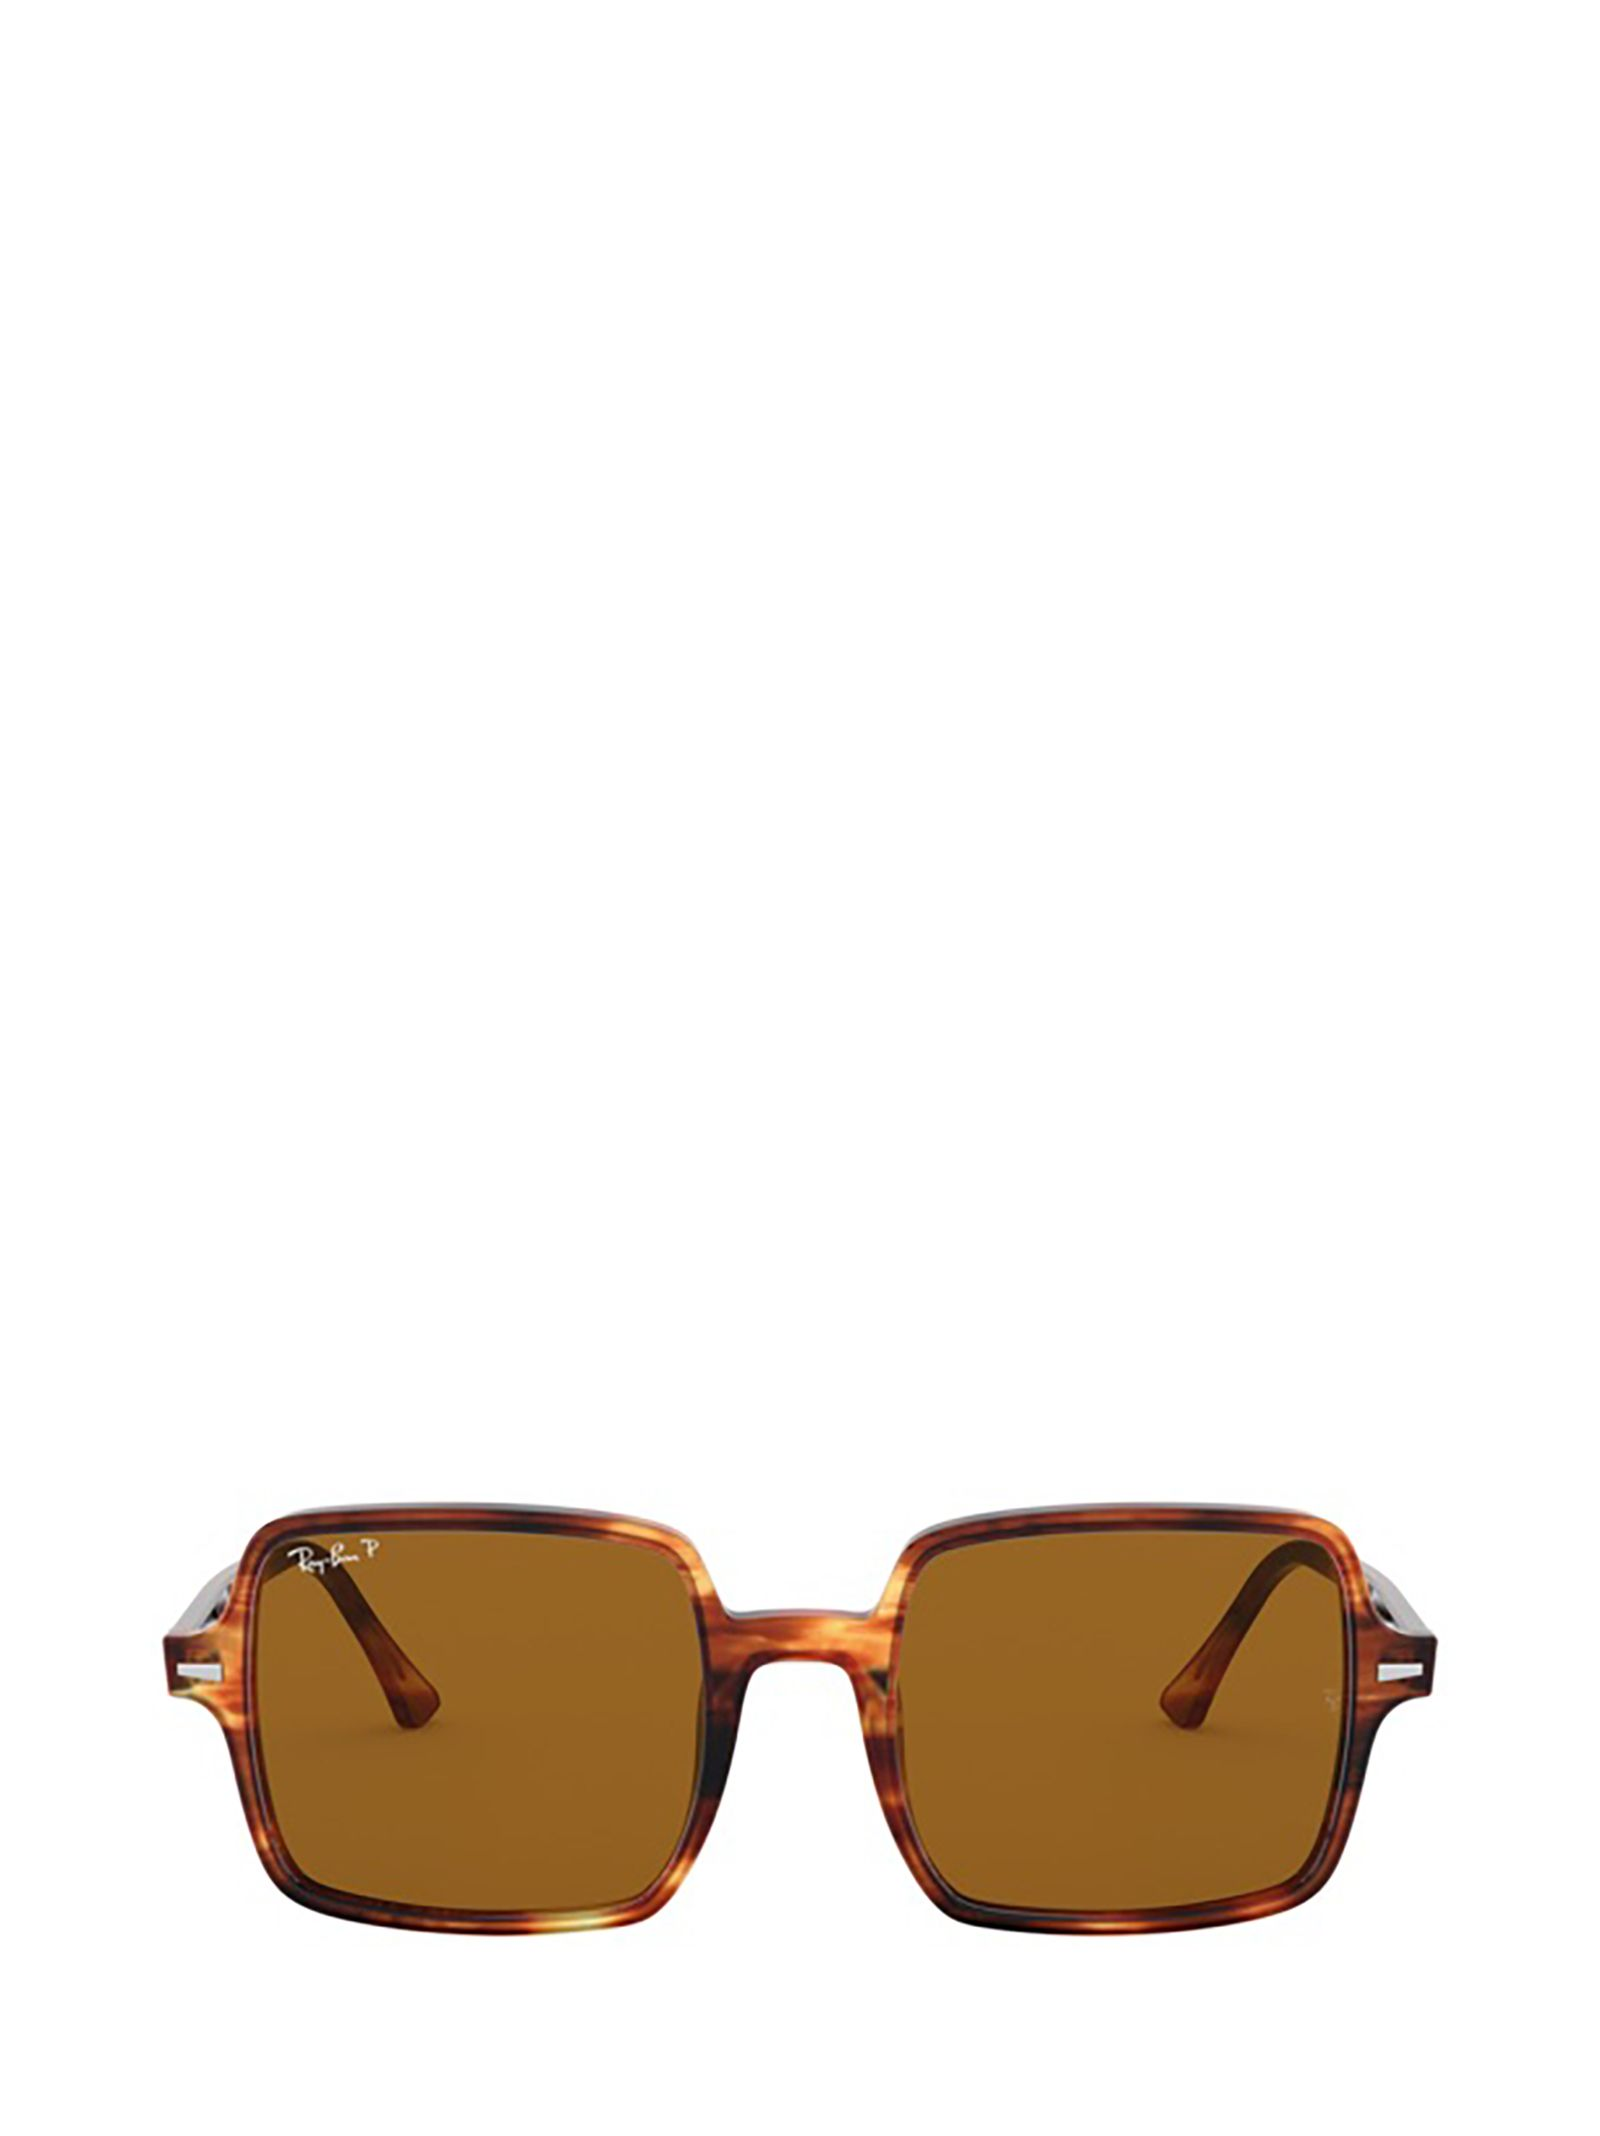 Ray Ban RAY BAN WOMEN'S BROWN ACETATE SUNGLASSES